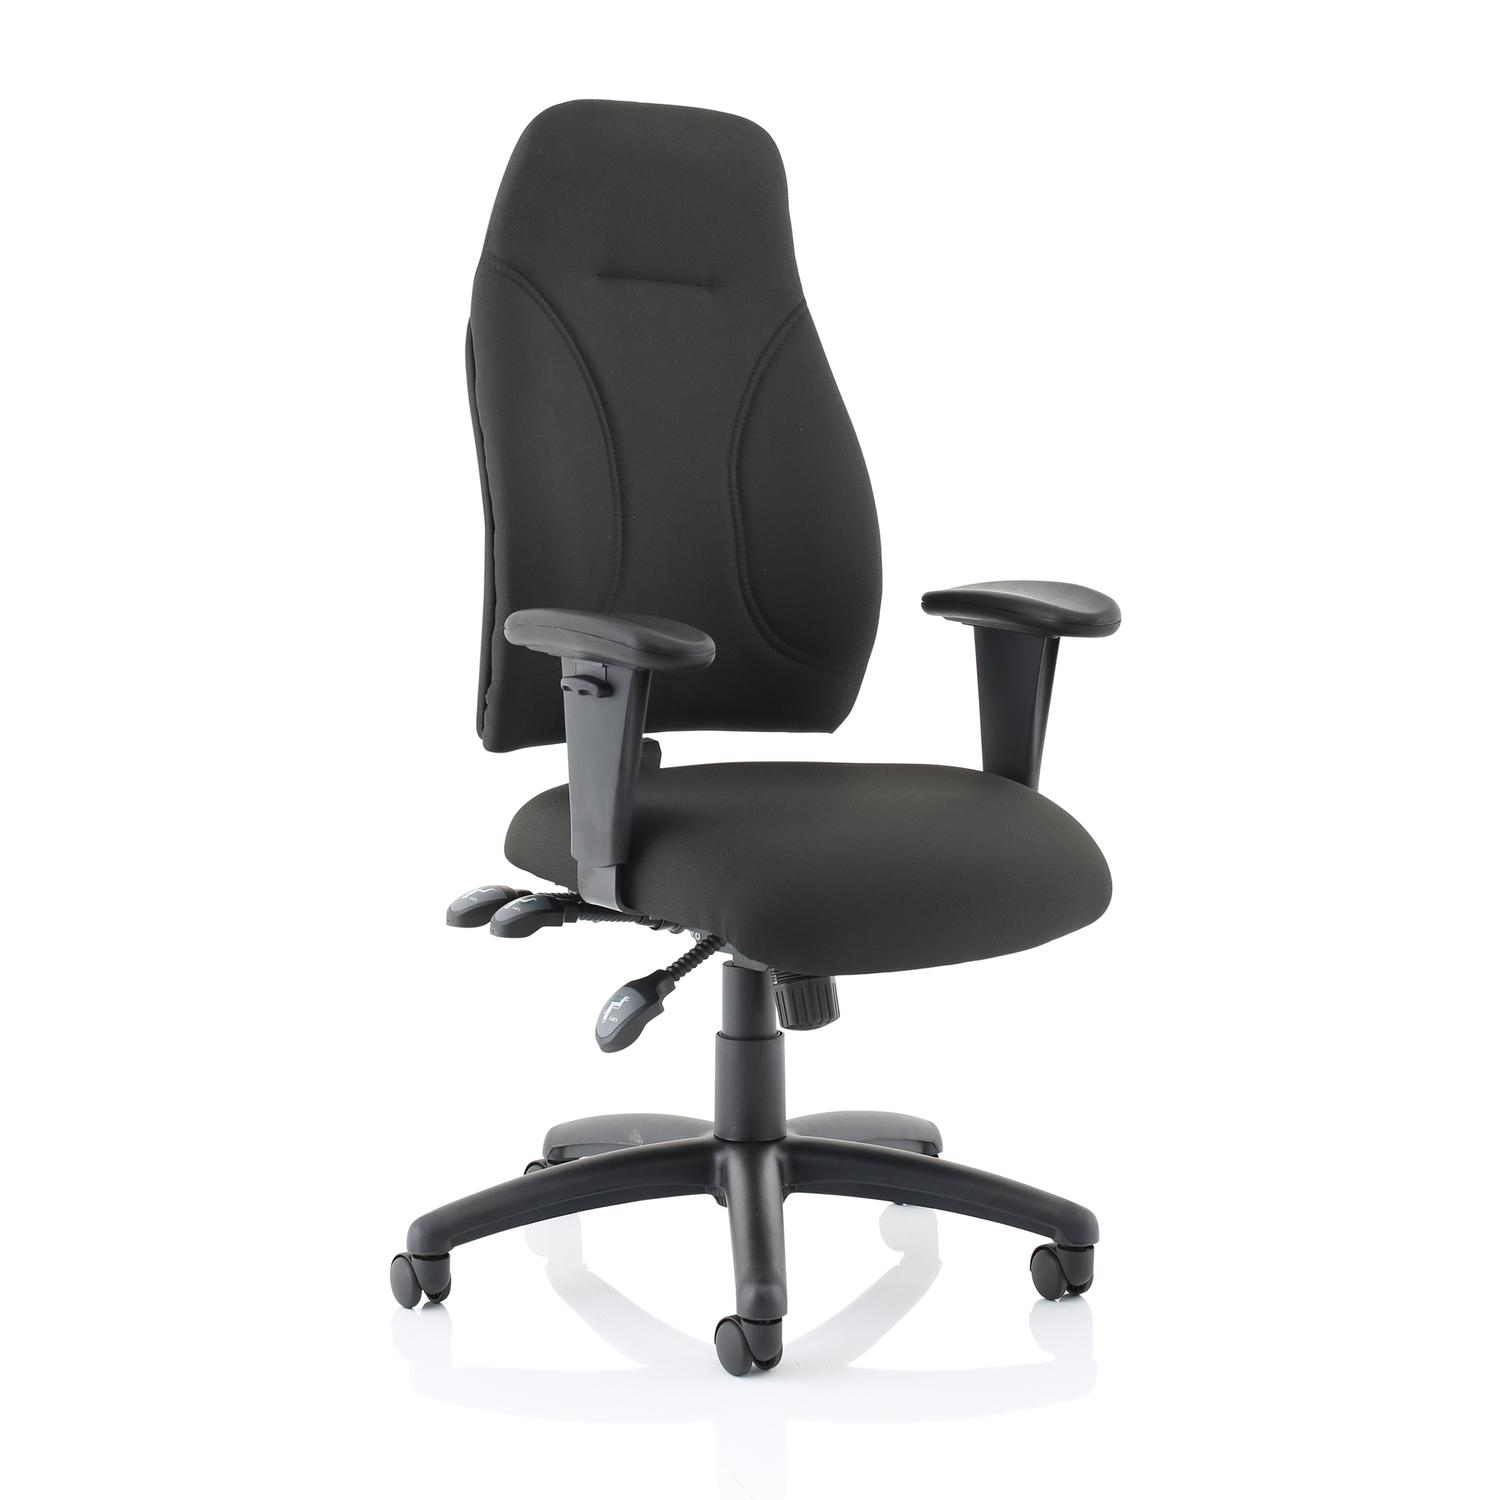 Trexus Posture High Back Asynchronous Chair Black 500x500x520-530mm Ref SP413845